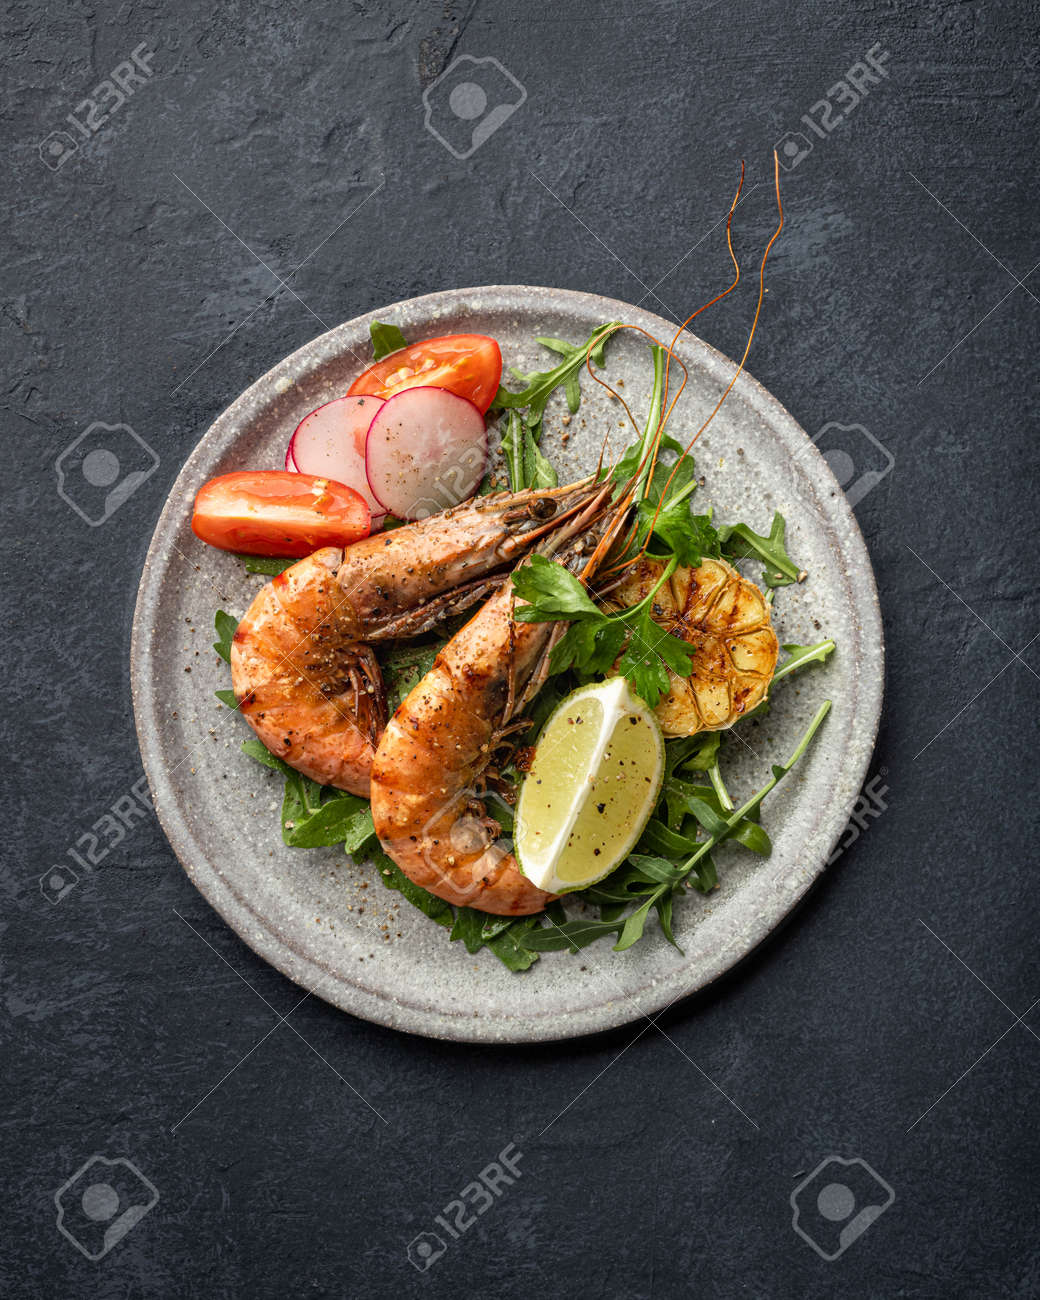 grilled tiger prawns with vegetables on a ceramic plate, top view - 169788531